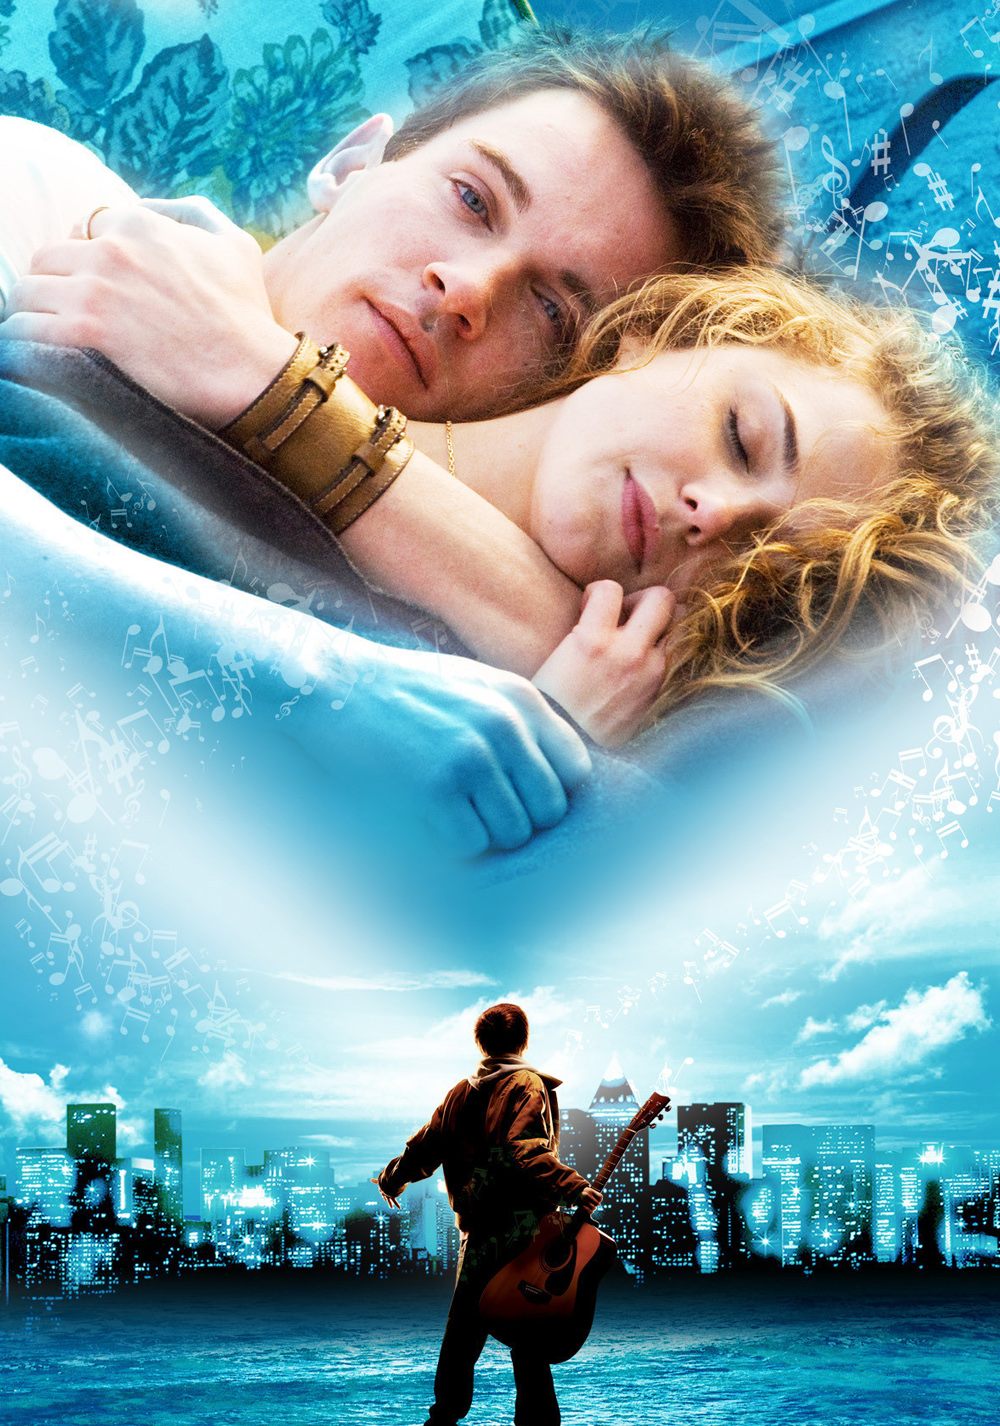 august rush August rush full movie online for free in hd quality.